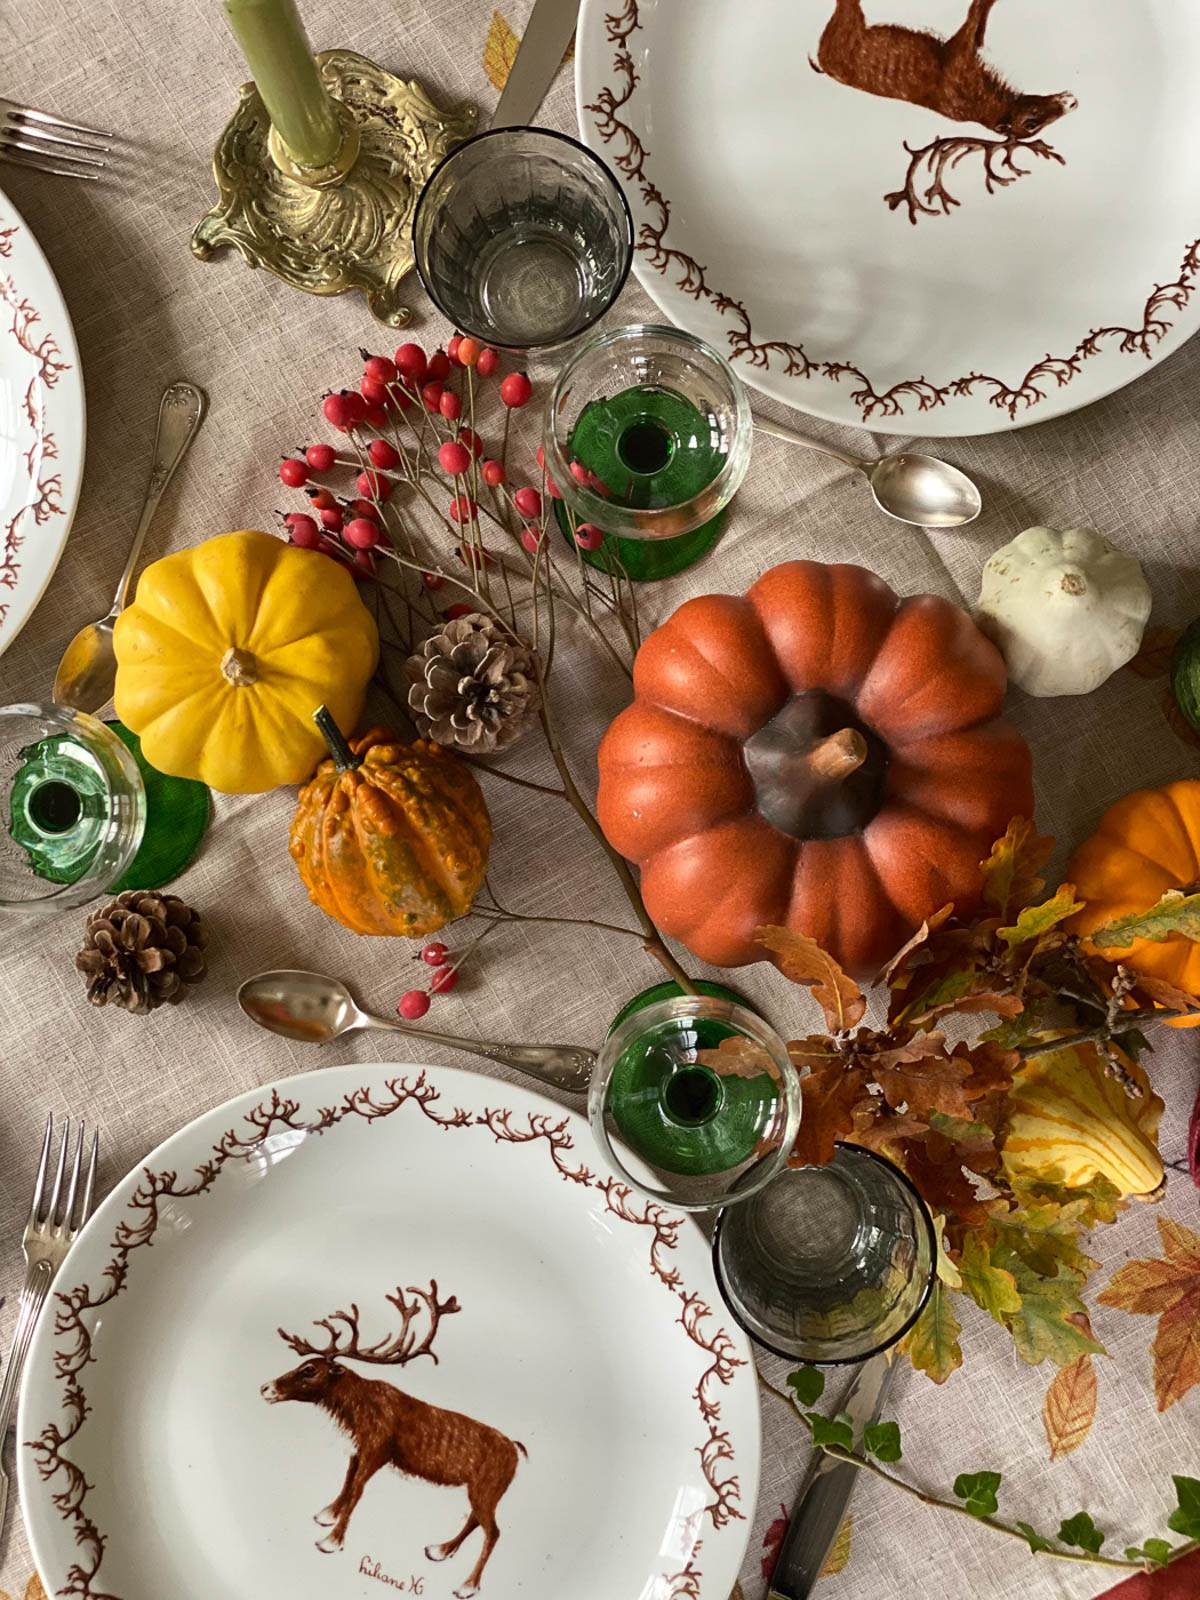 An abundant Autumn table